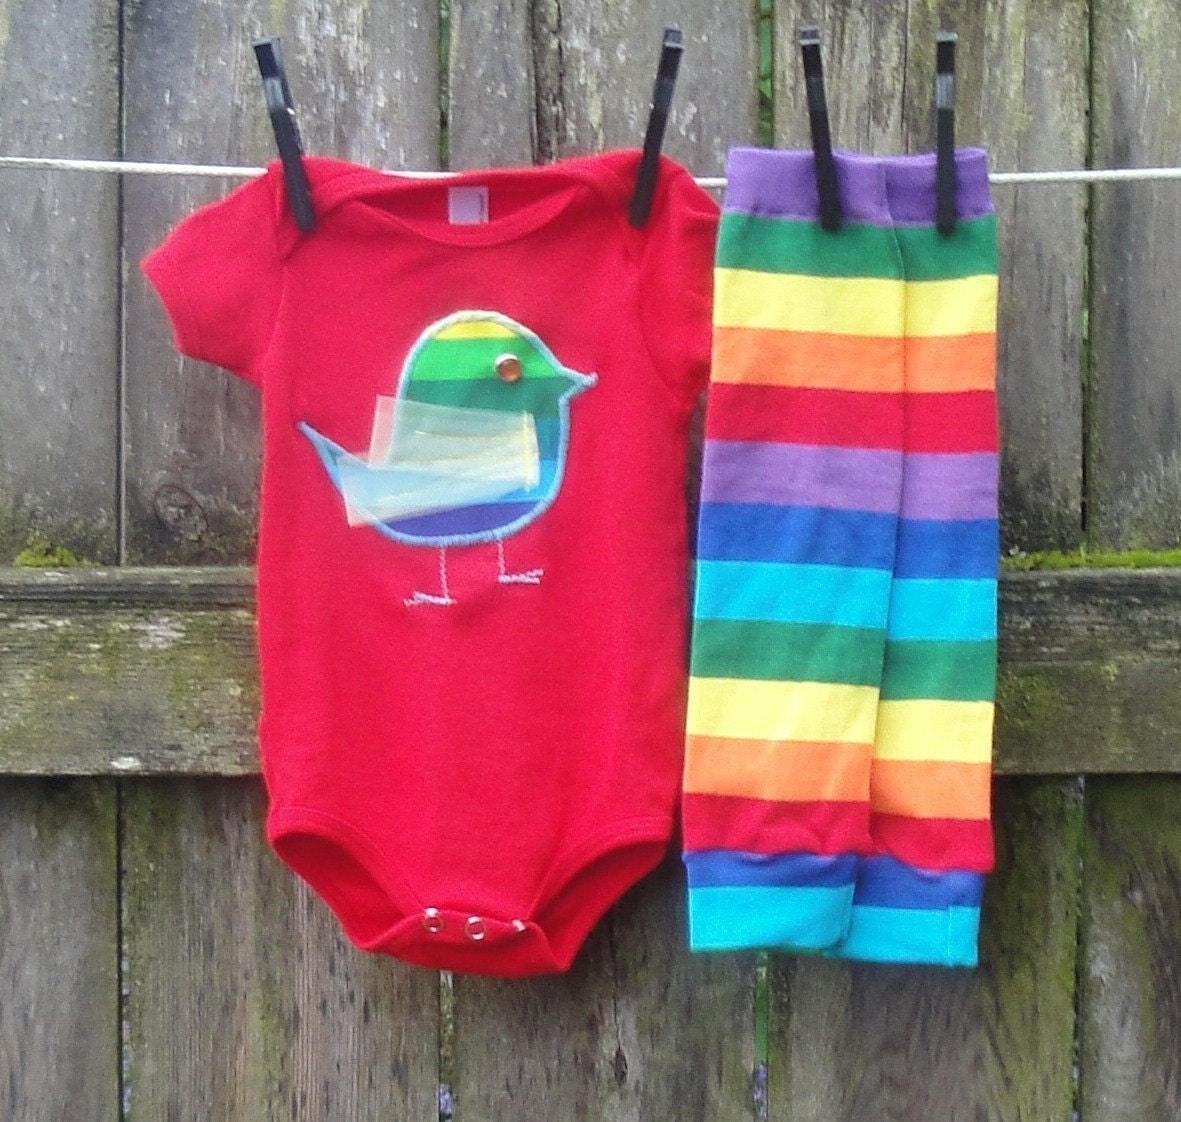 RAINBOW CHIC-A-DEE--2 piece Bird Applique Onesie and Kool Kid Legs Combo--Red, White or Black-Long or Short Sleeve-3/6,6/12,12/18,18/24 mos